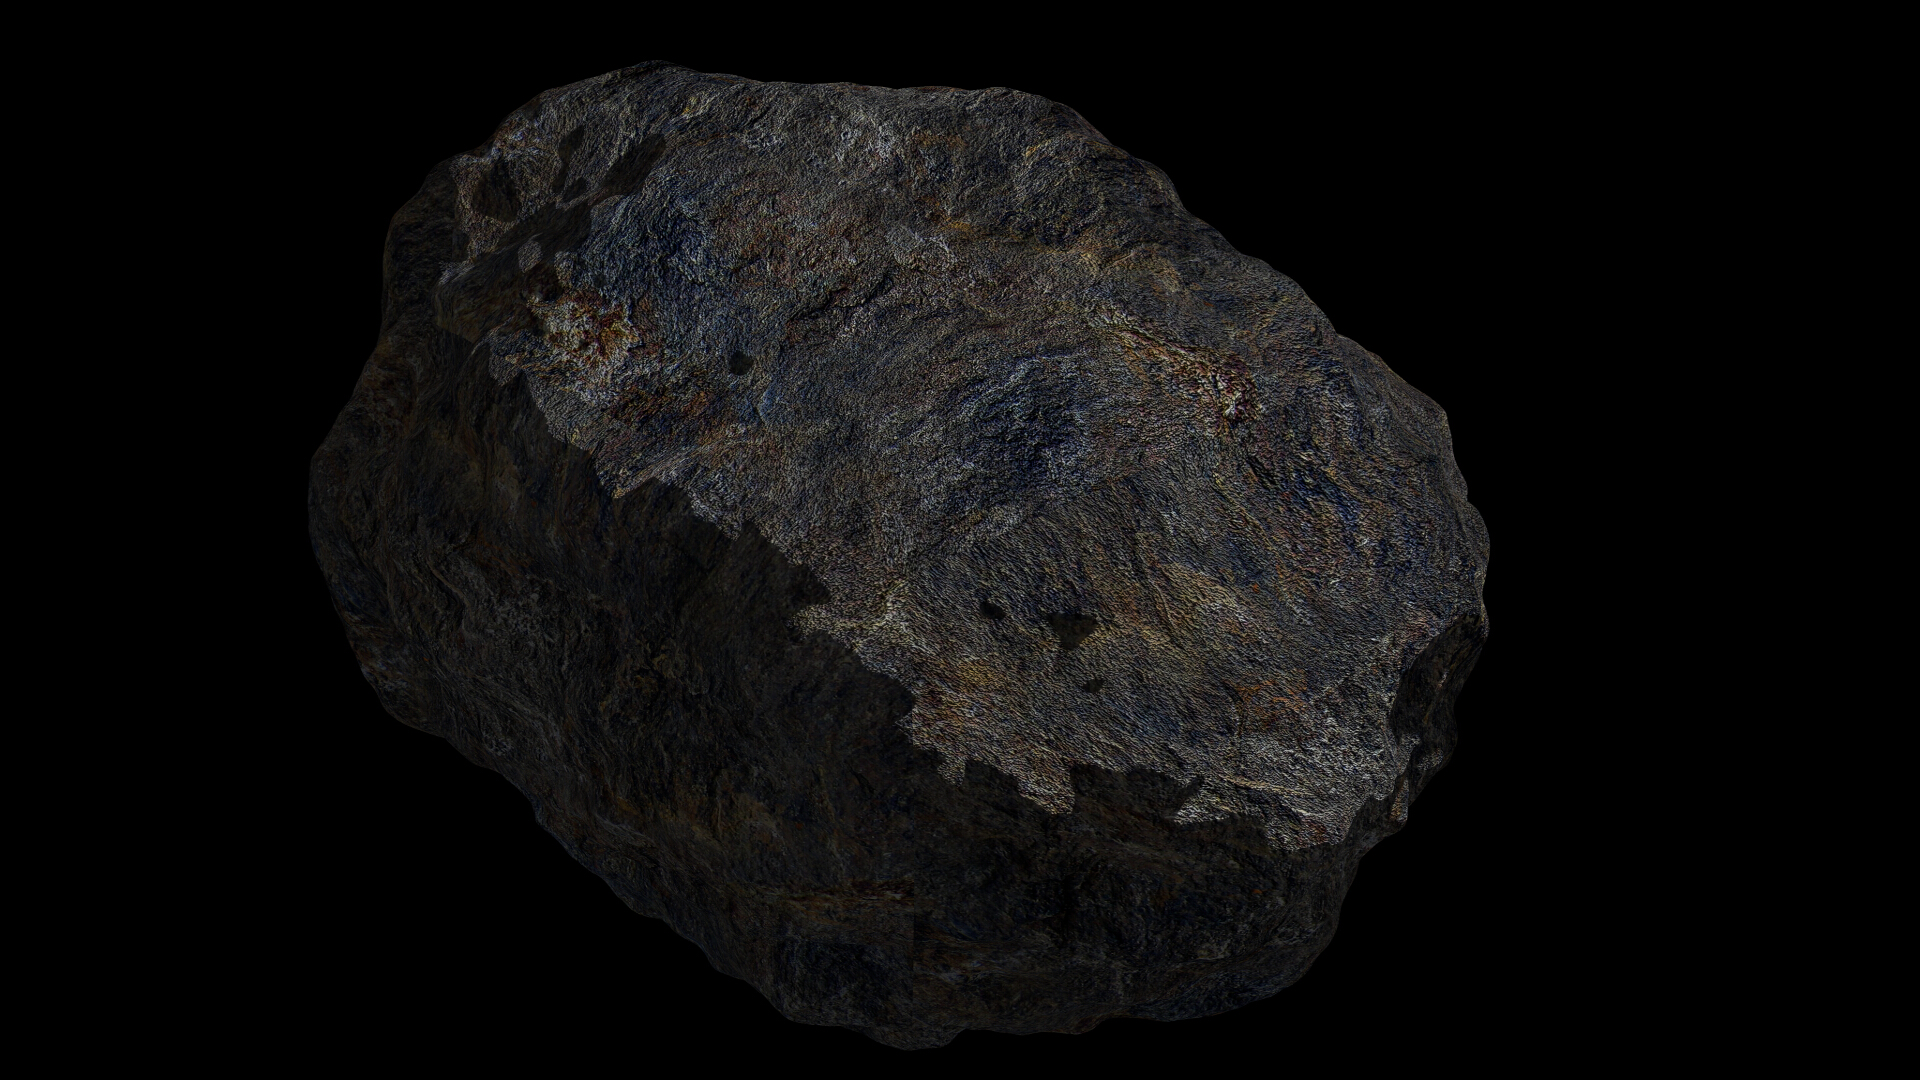 asteroide fantasia 4 3d model 3ds barreja dae fbx obj 267363